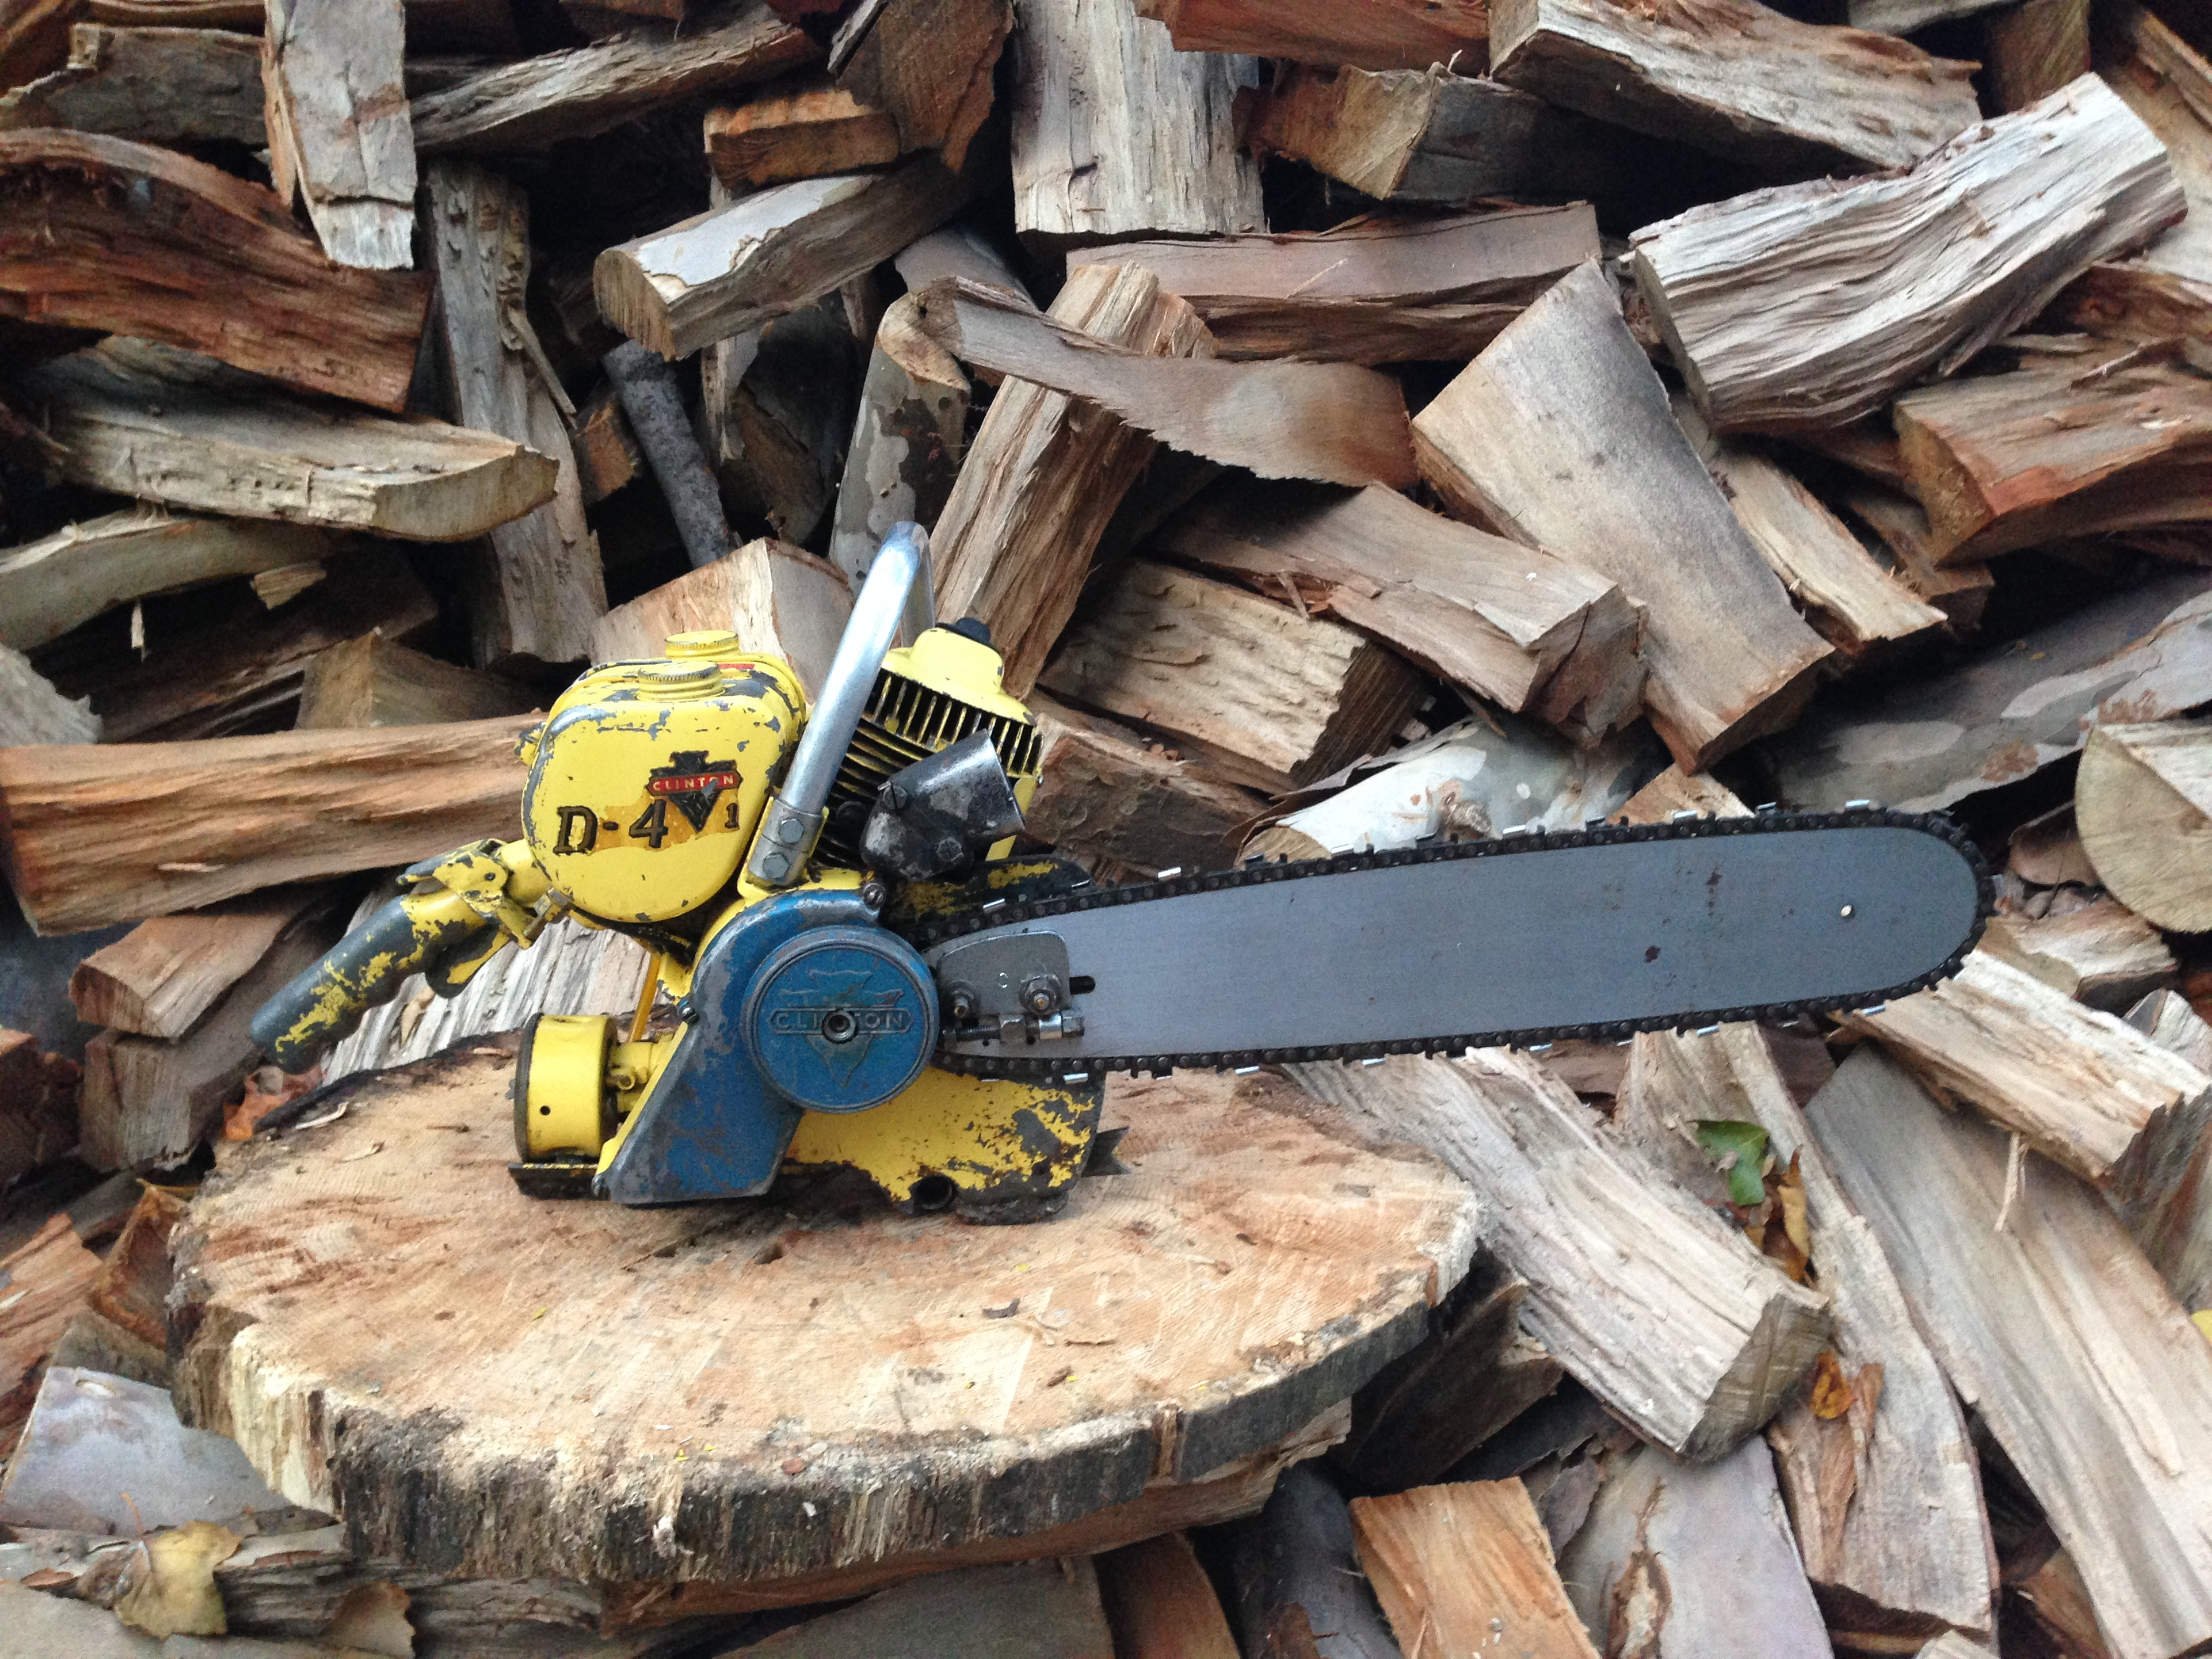 Clinton D4 vintage chainsaw #7.JPG